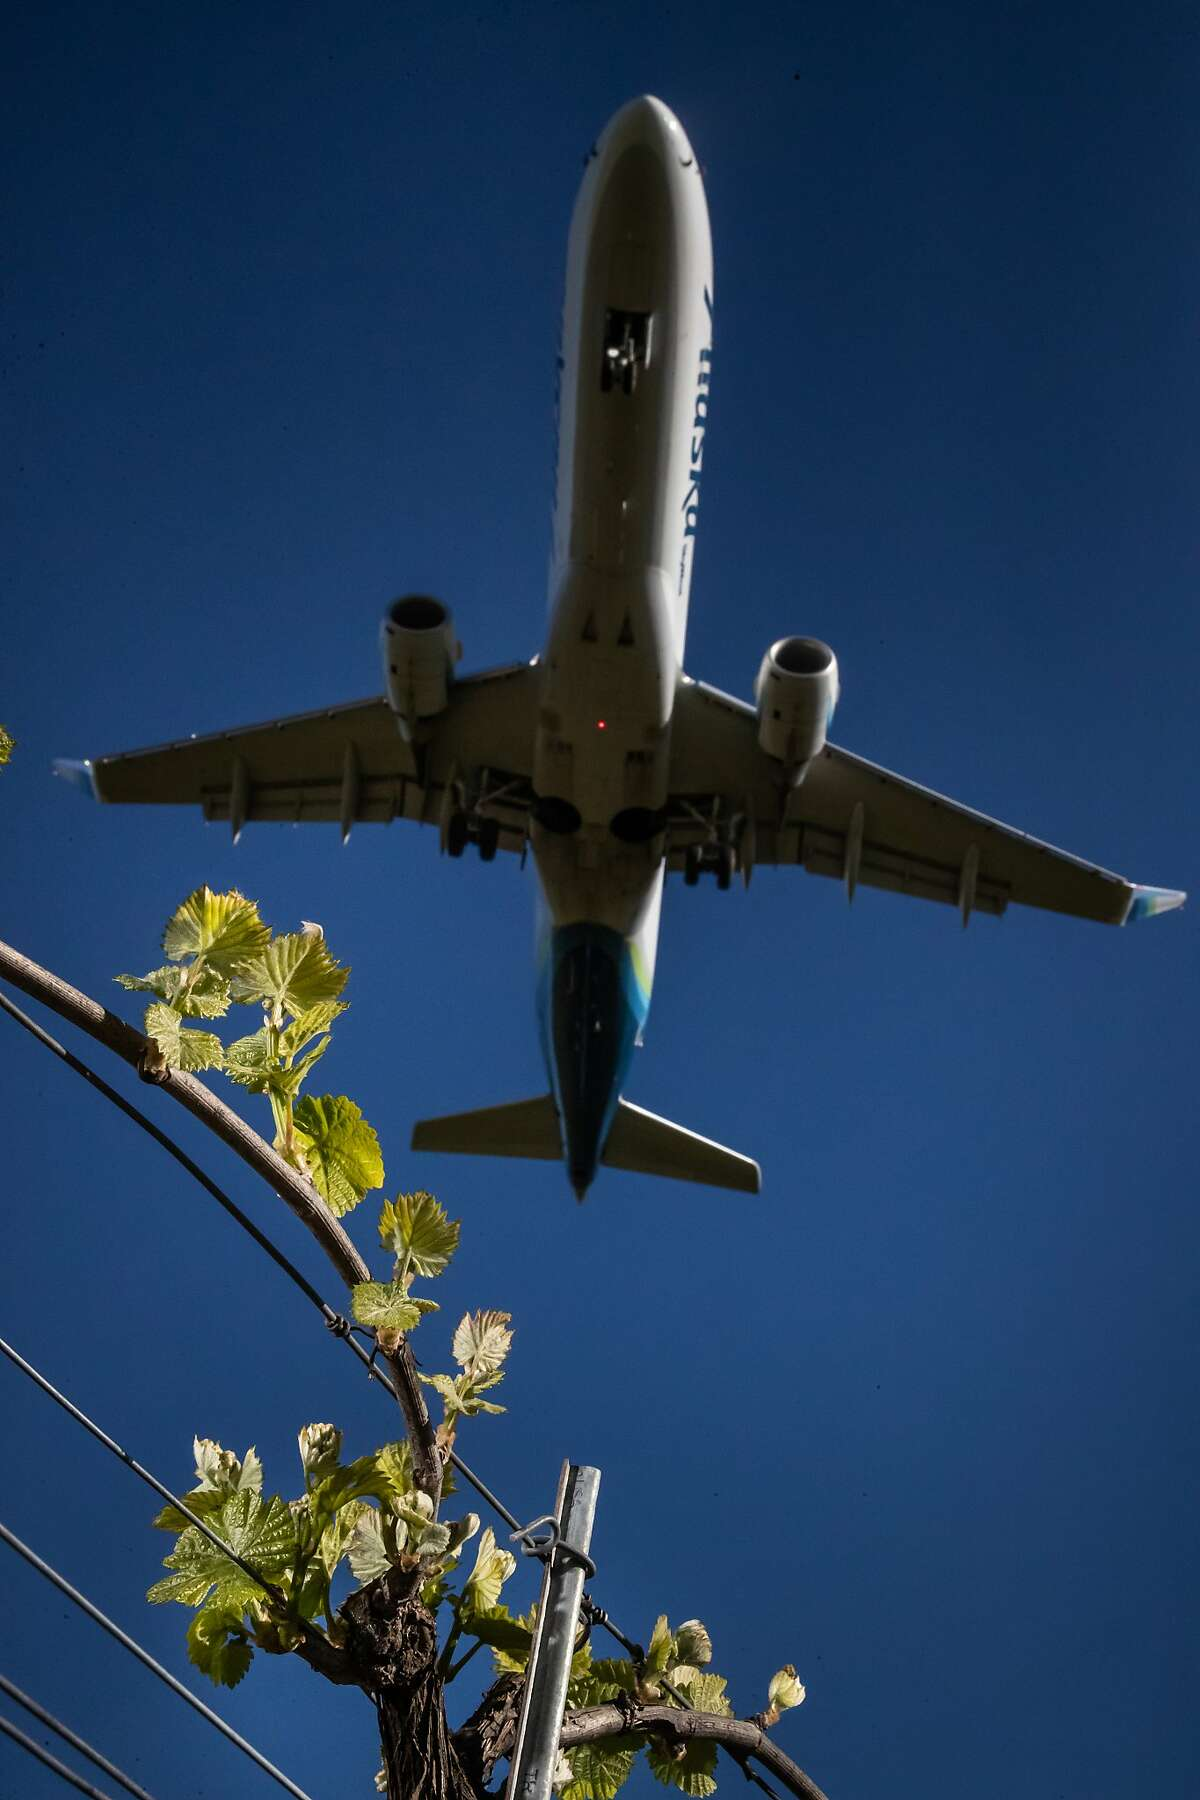 An Alaska Airlines jet lands at the Charles M. Schulz�Sonoma County Airport above fields of grapevines on Friday, April 12, 2019, in Santa Rosa, Calif.